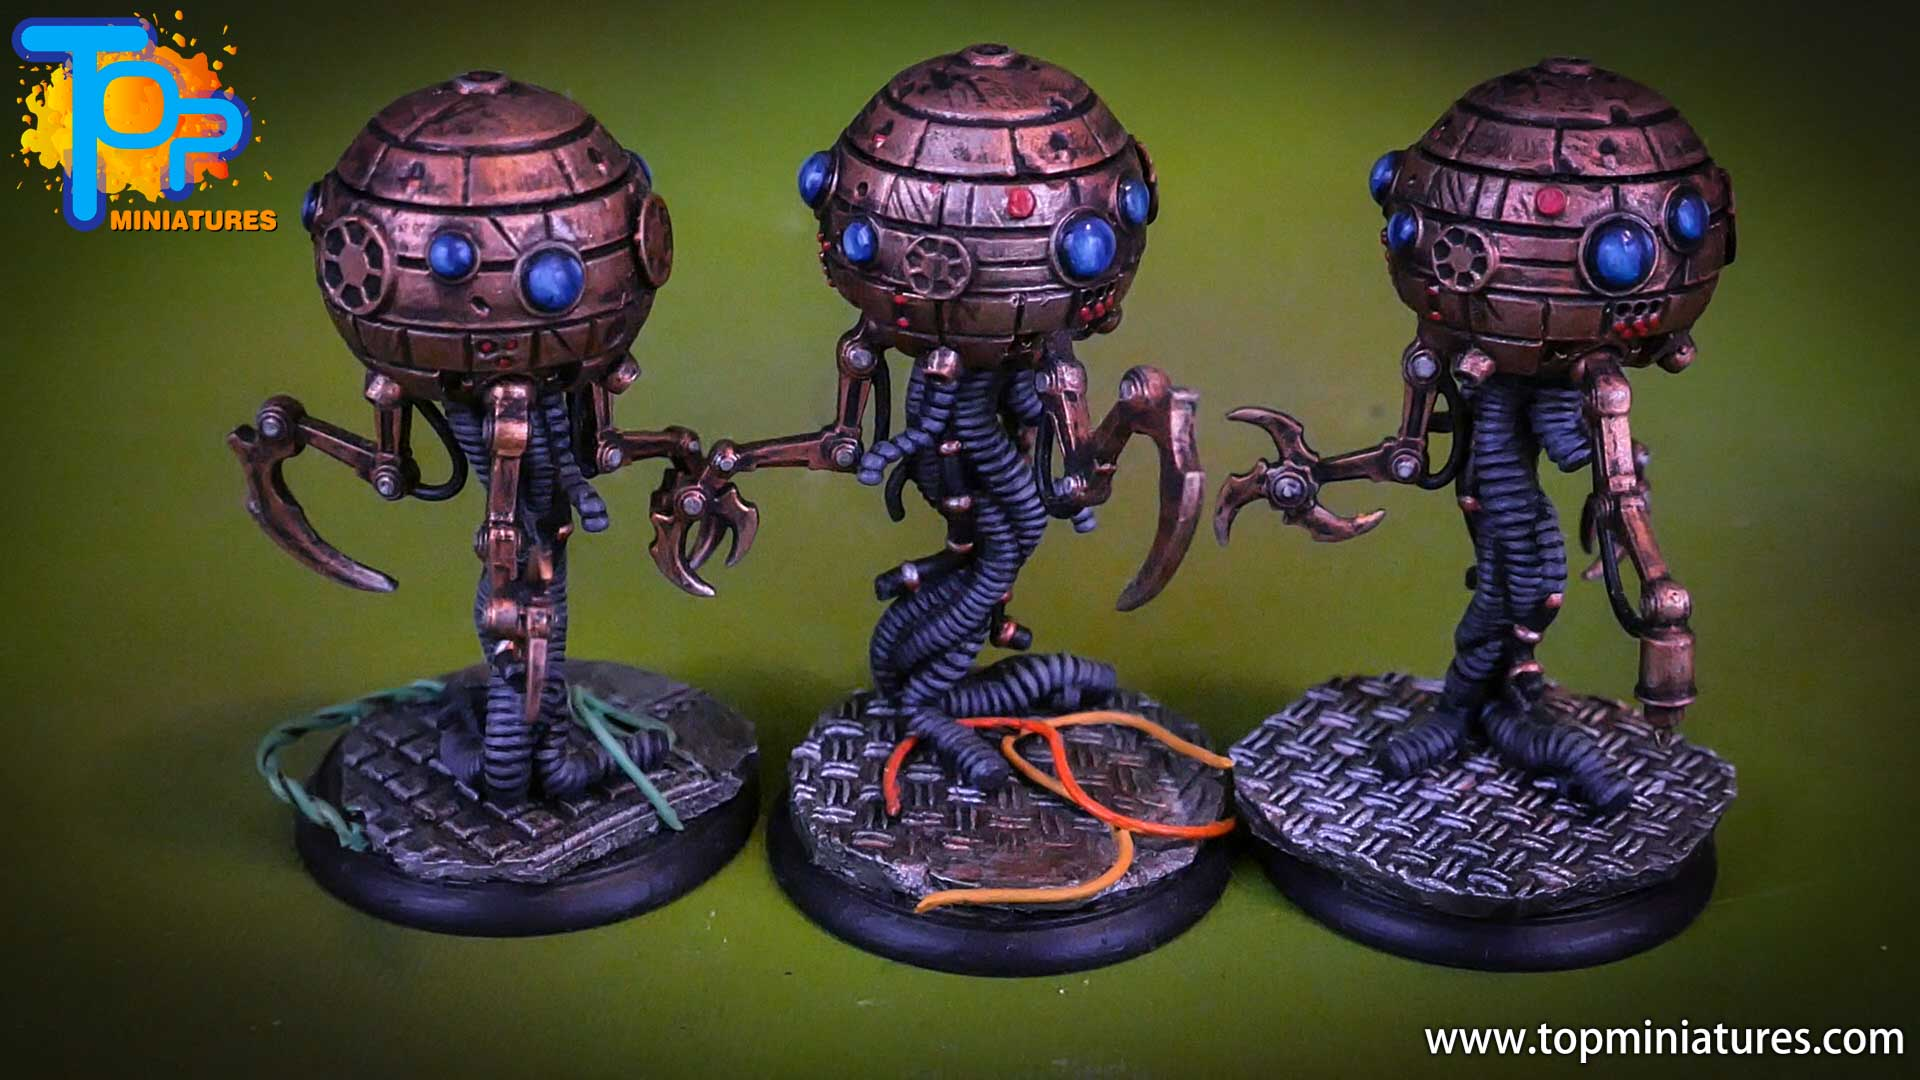 shadows of brimstone Derelict Ship Robots (2)